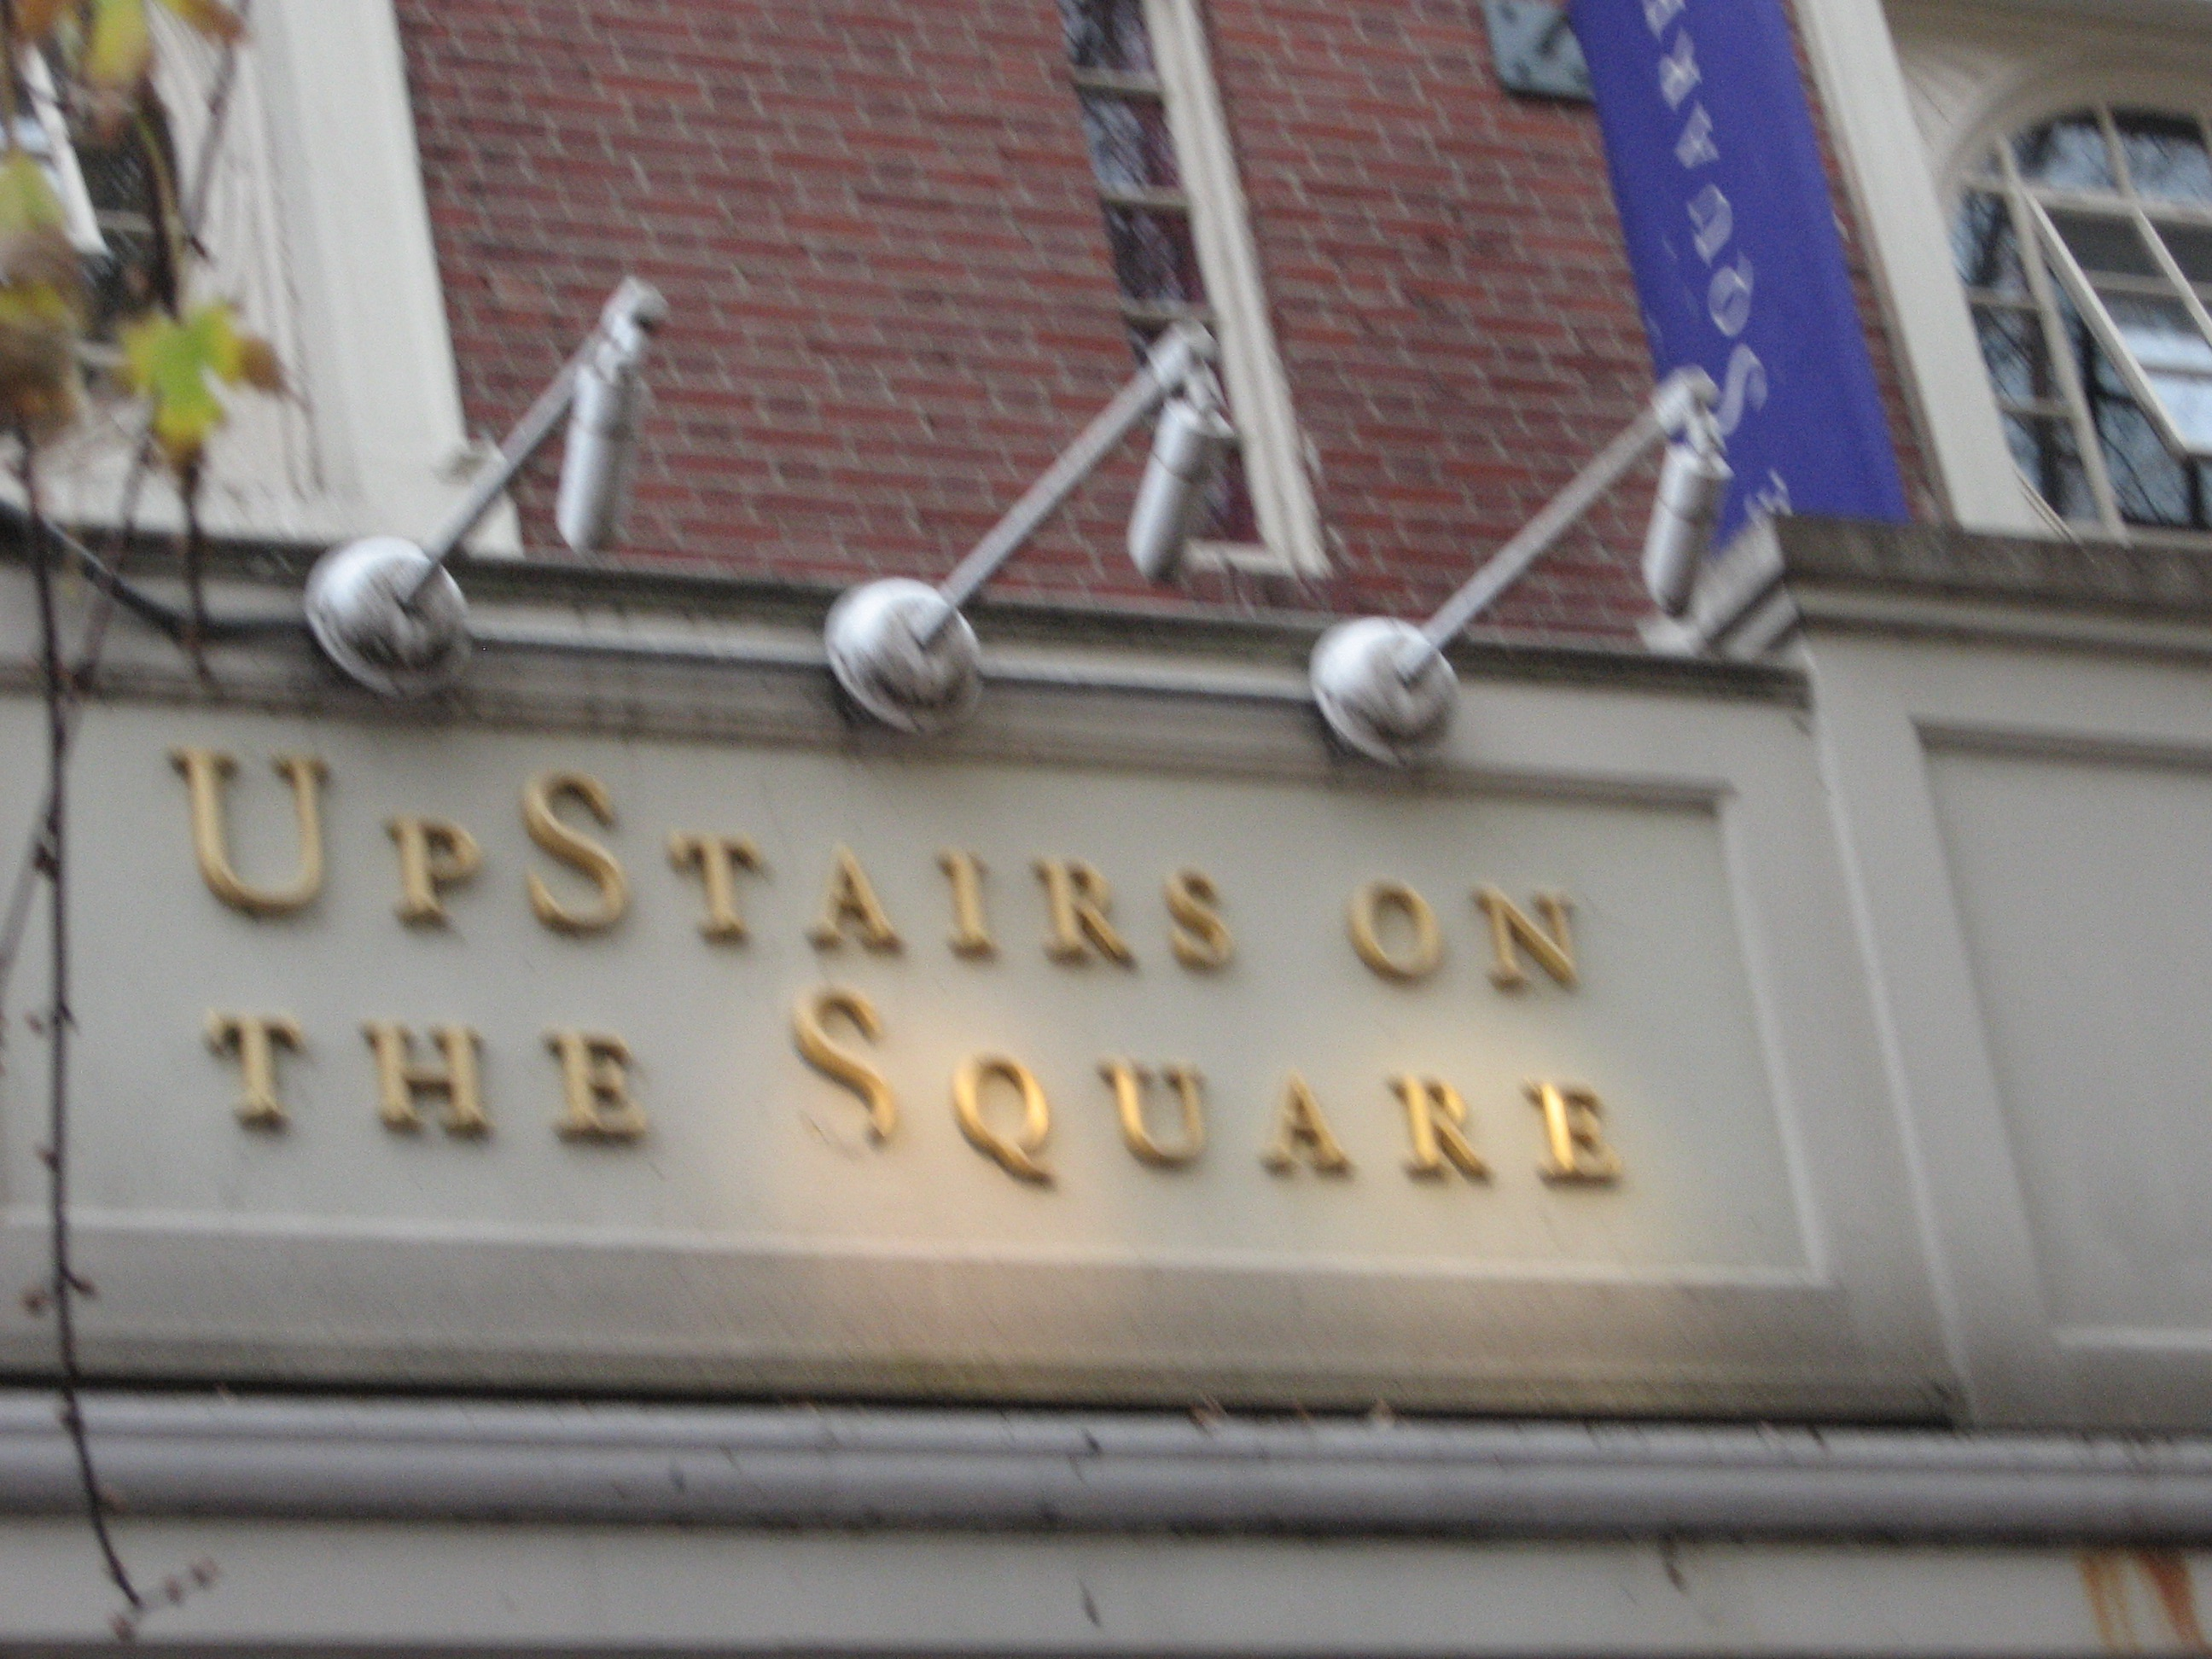 11-2011-Upstairs-on-the-Square.jpg